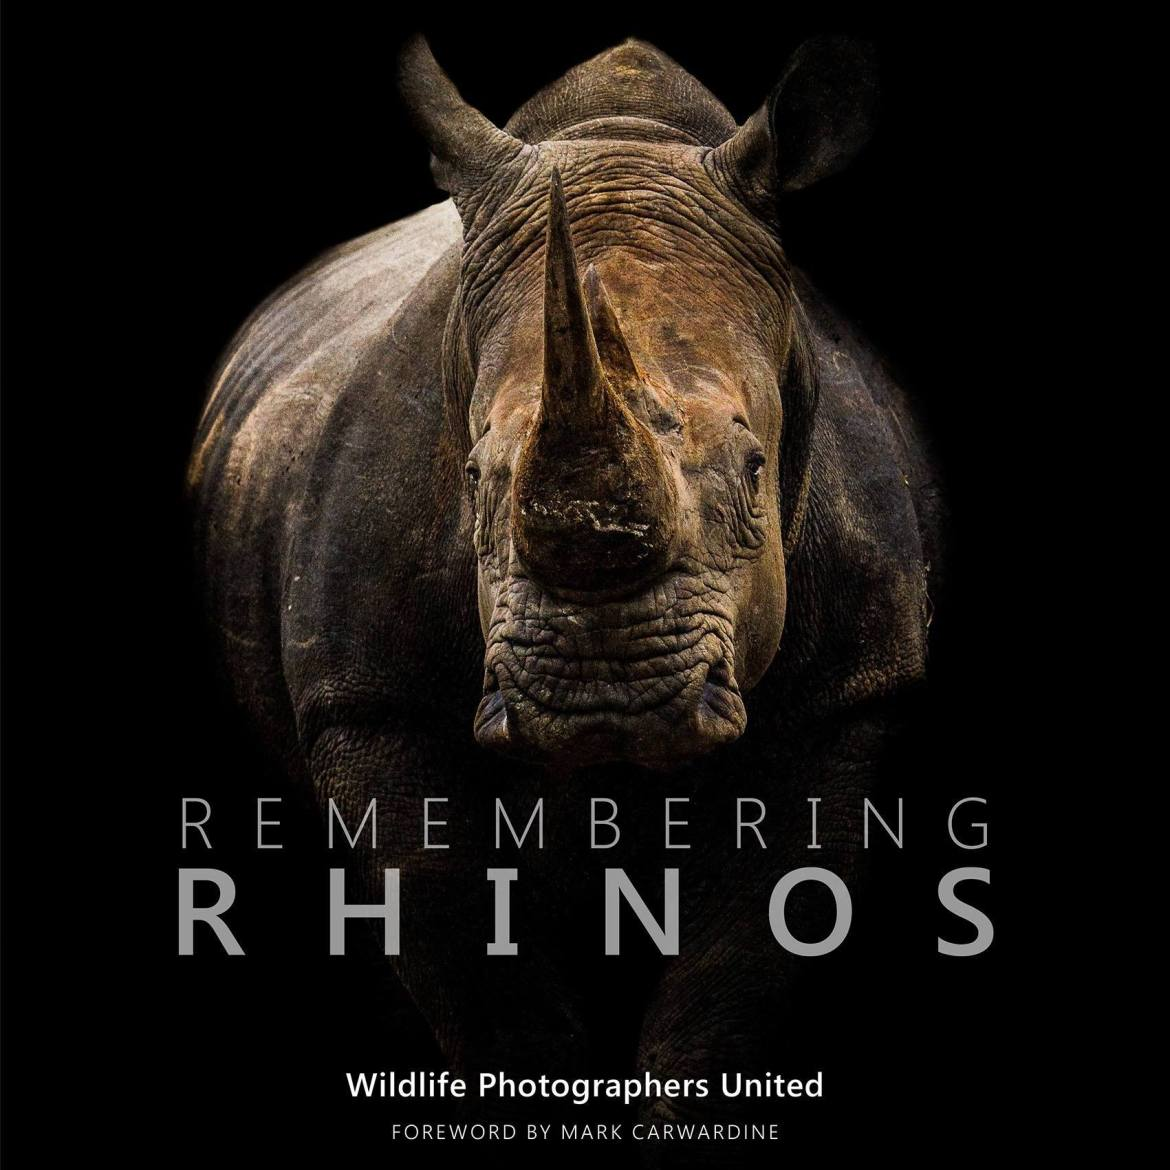 Remembering Rhinos launch: Special interview with Founder Margot Raggett